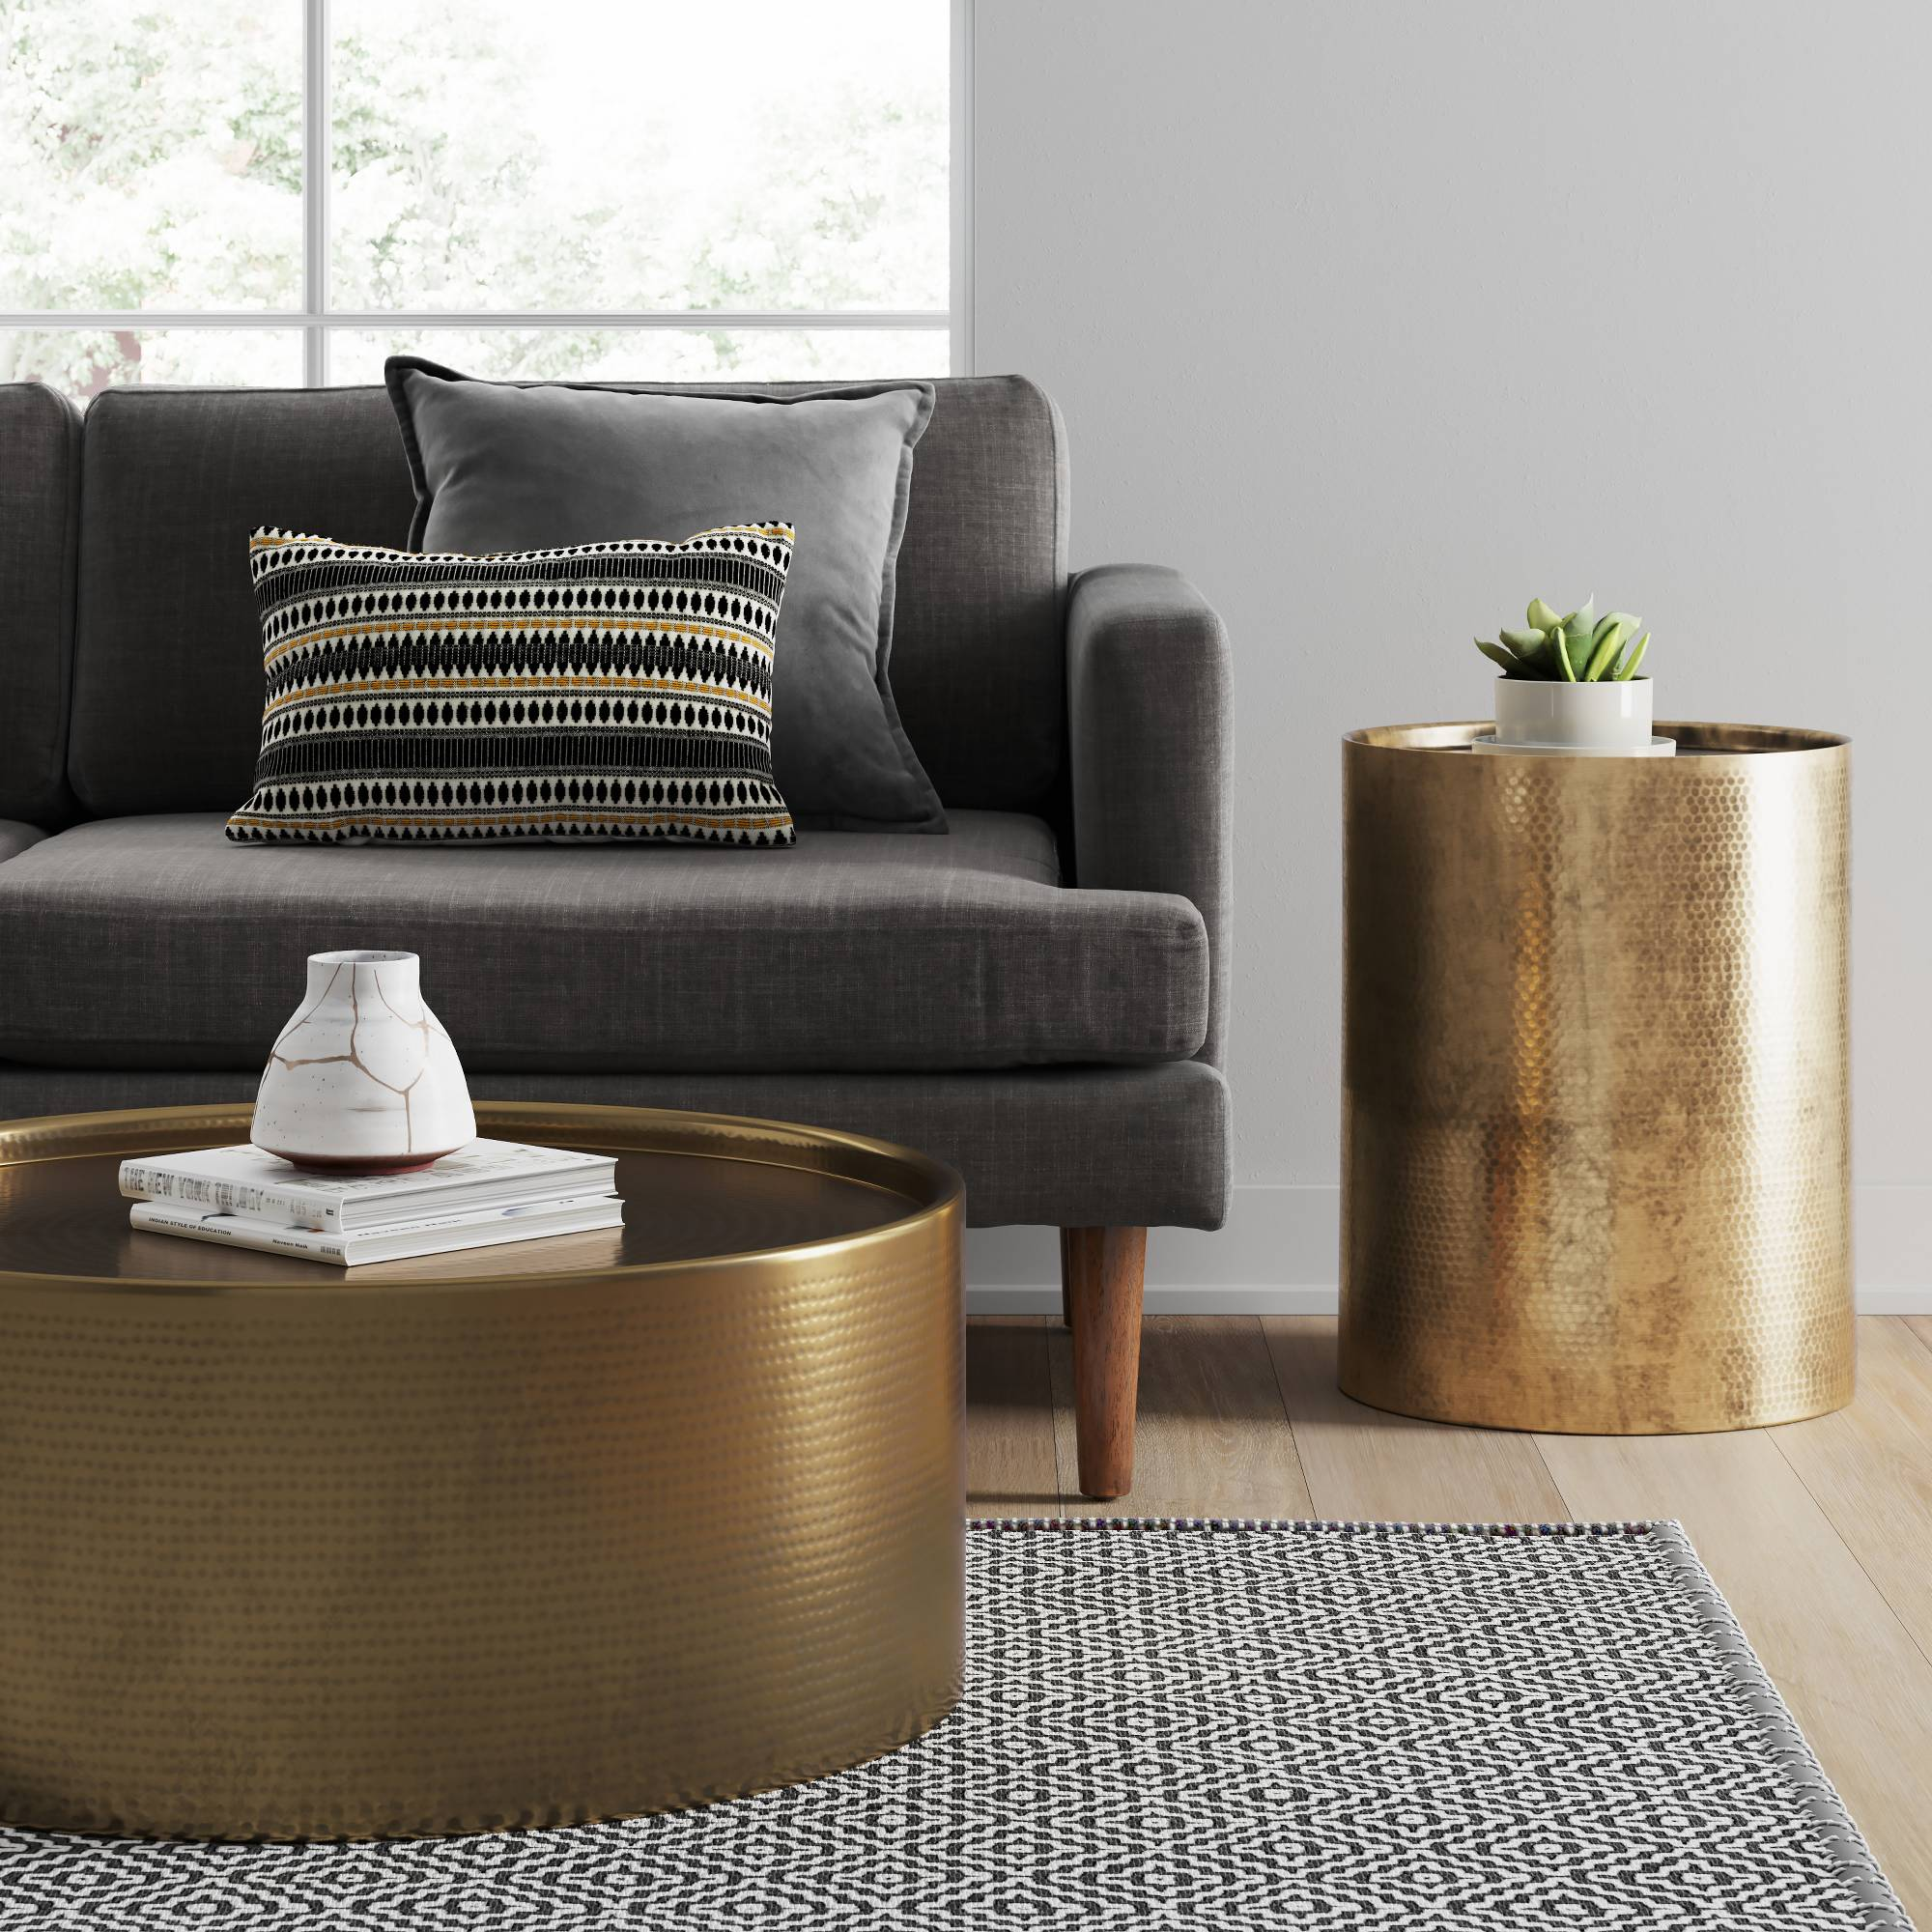 Buy these items from Targets new home decor line to make